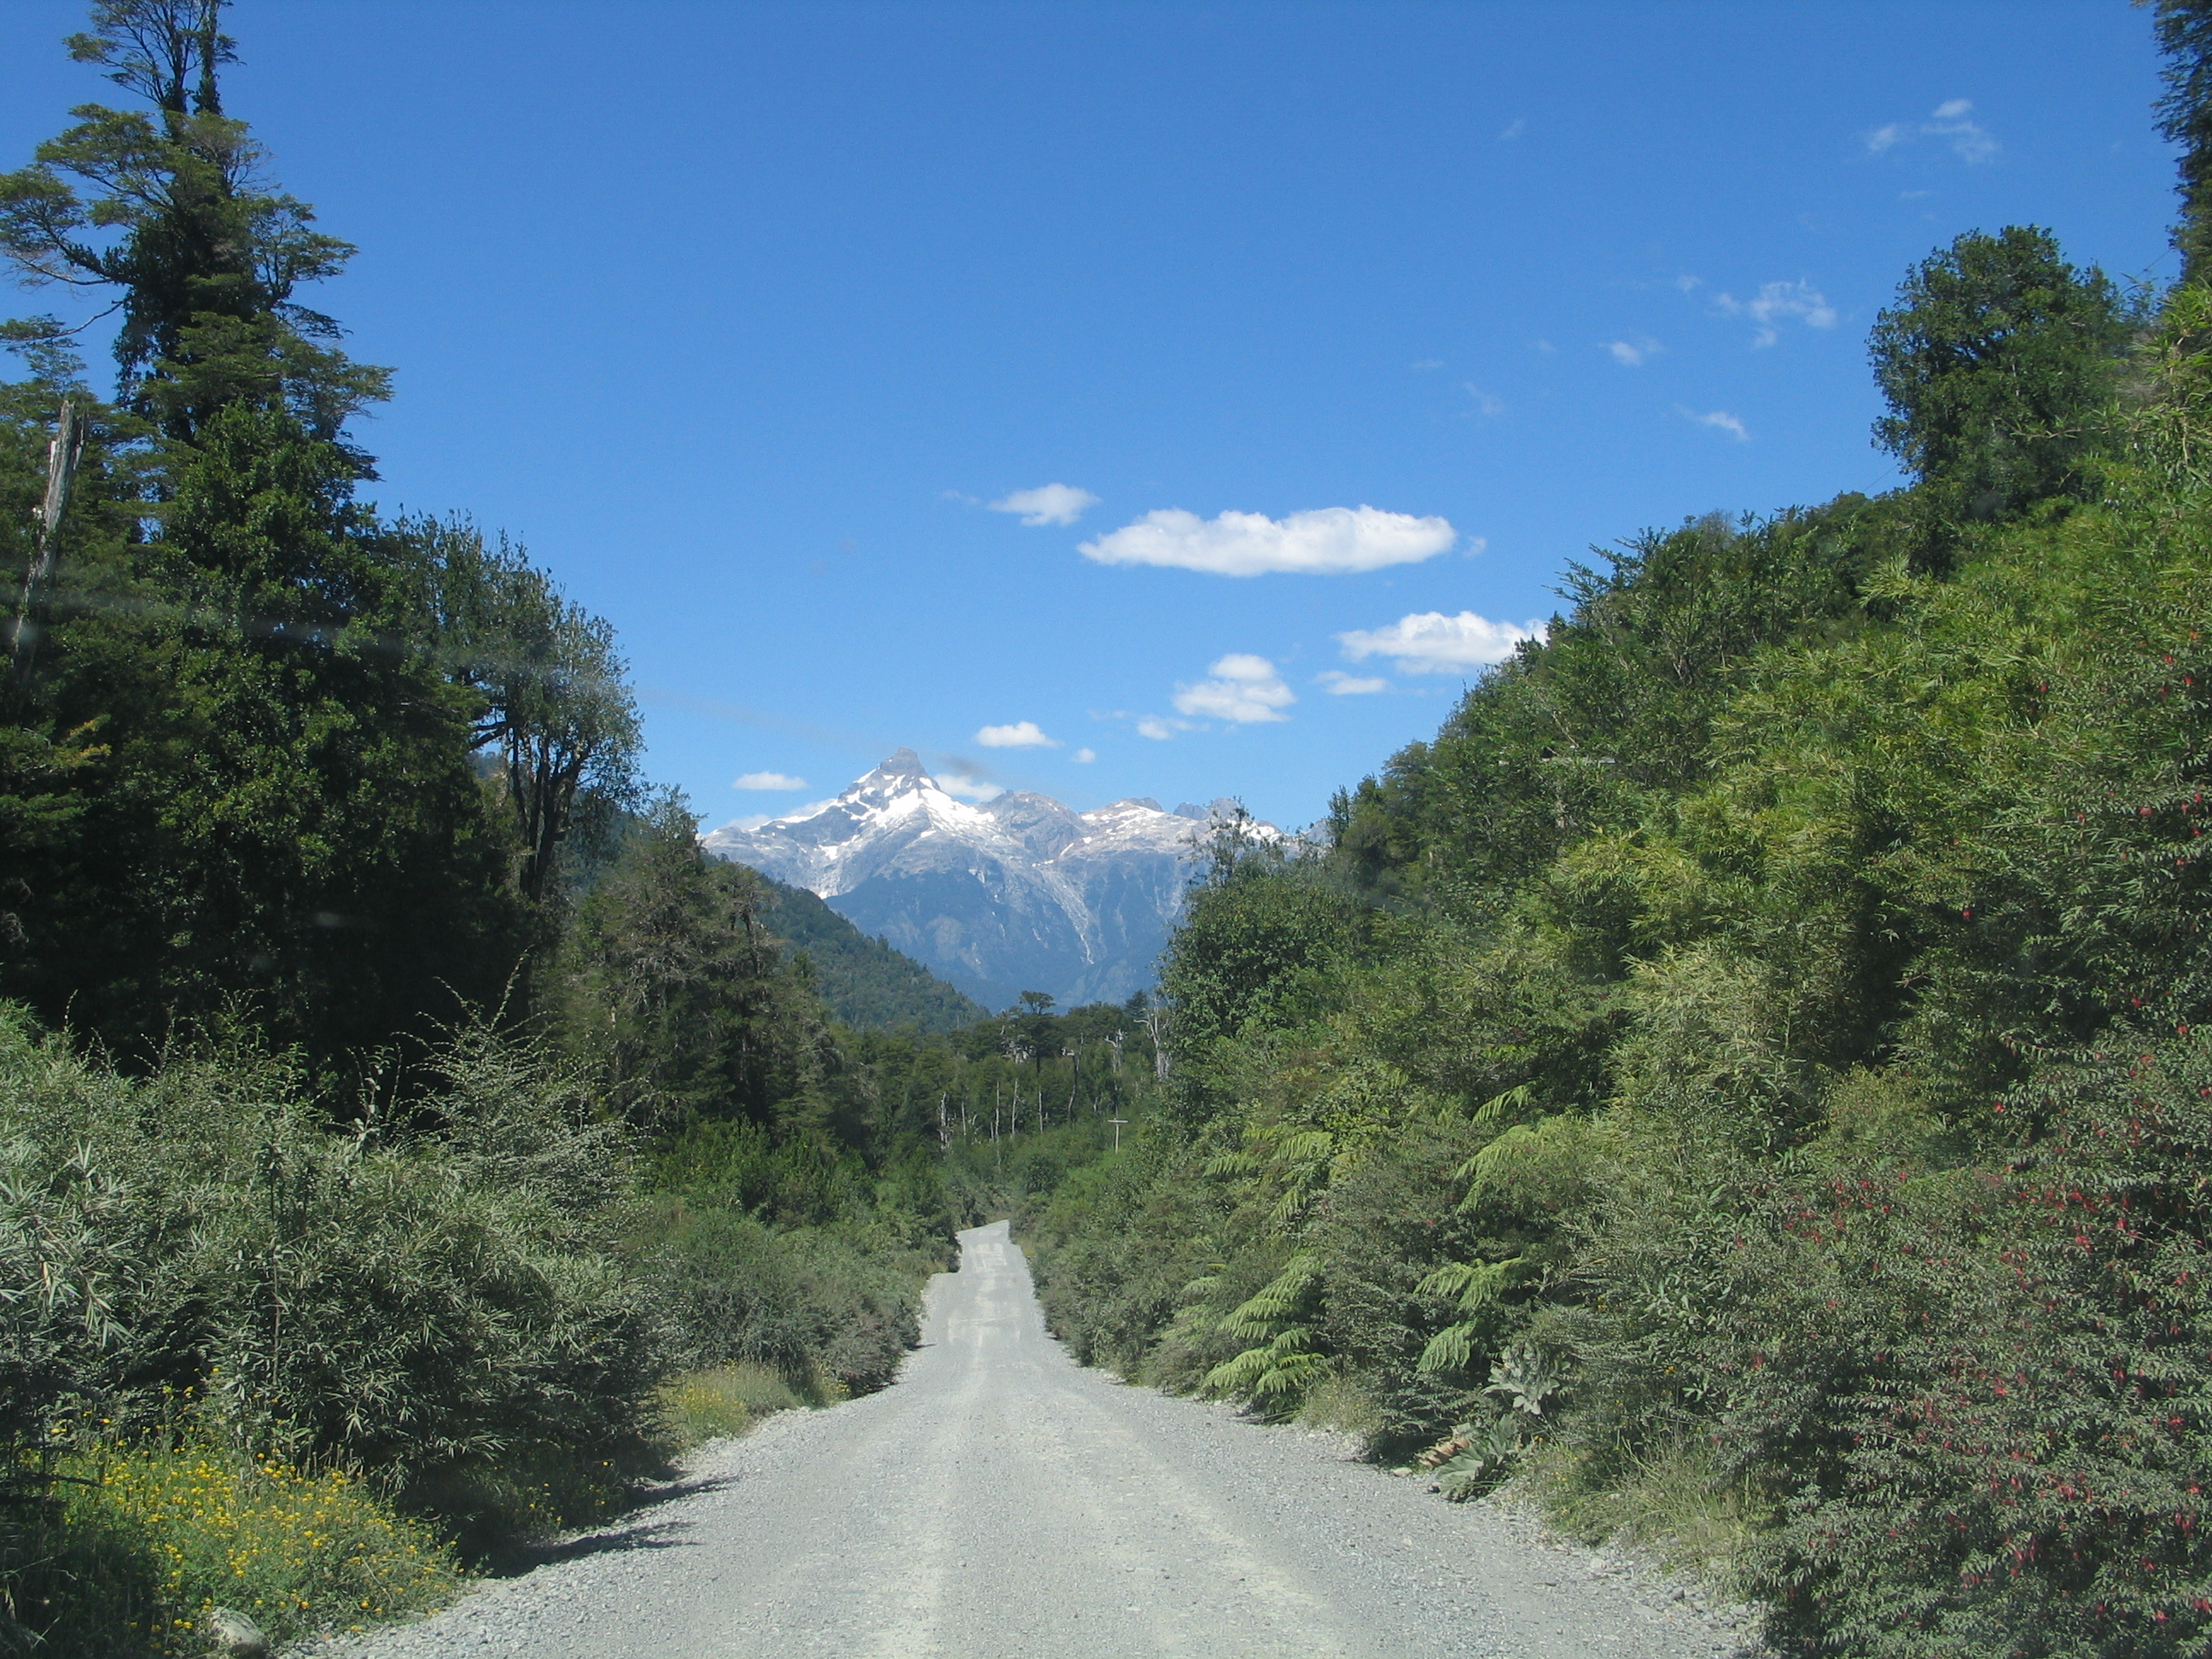 Carretera Austral, Selfdrive in the Highway